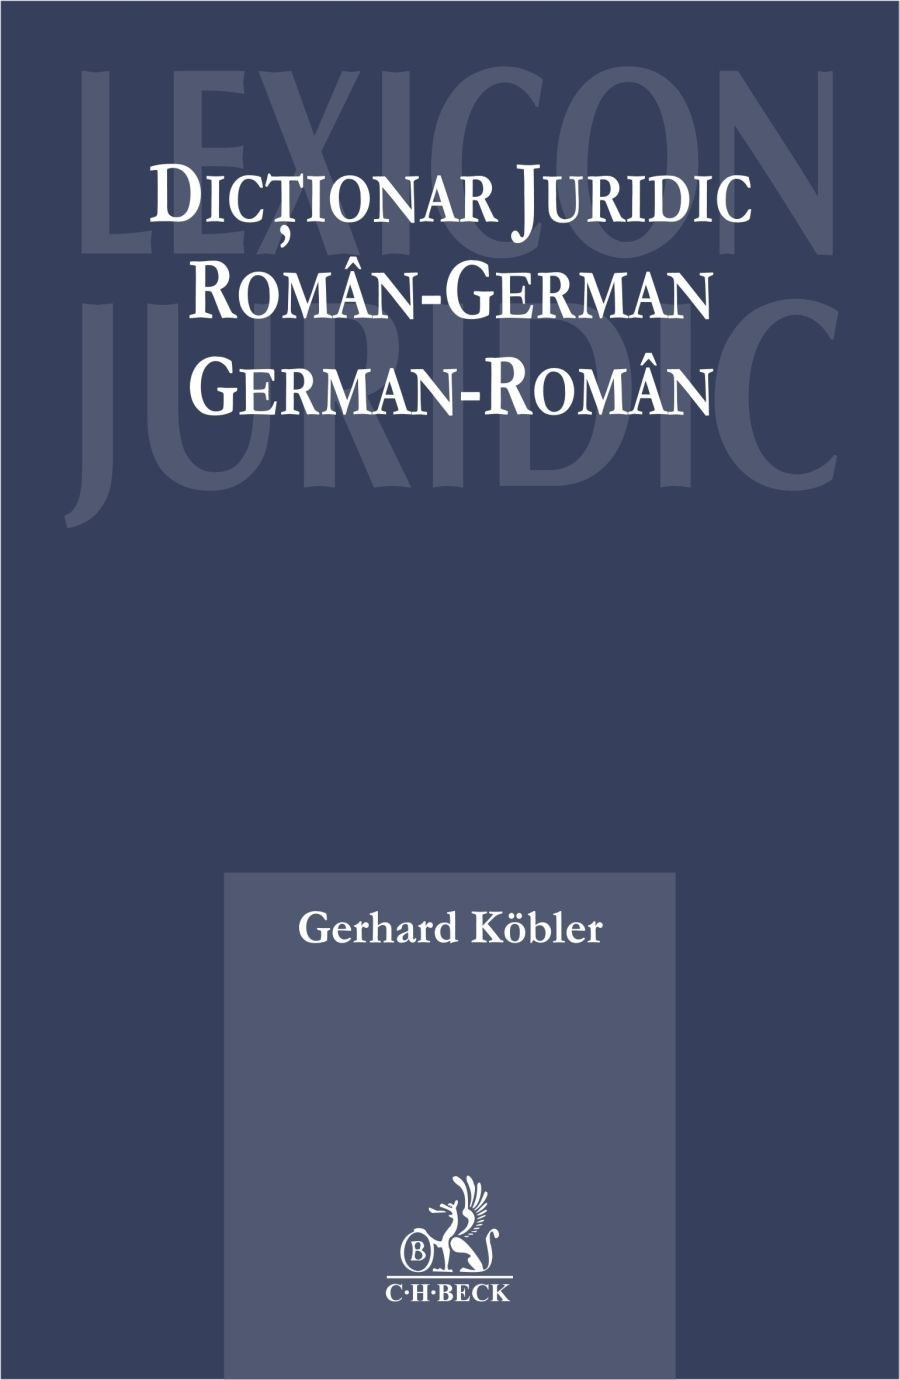 Dictionar juridic roman german german